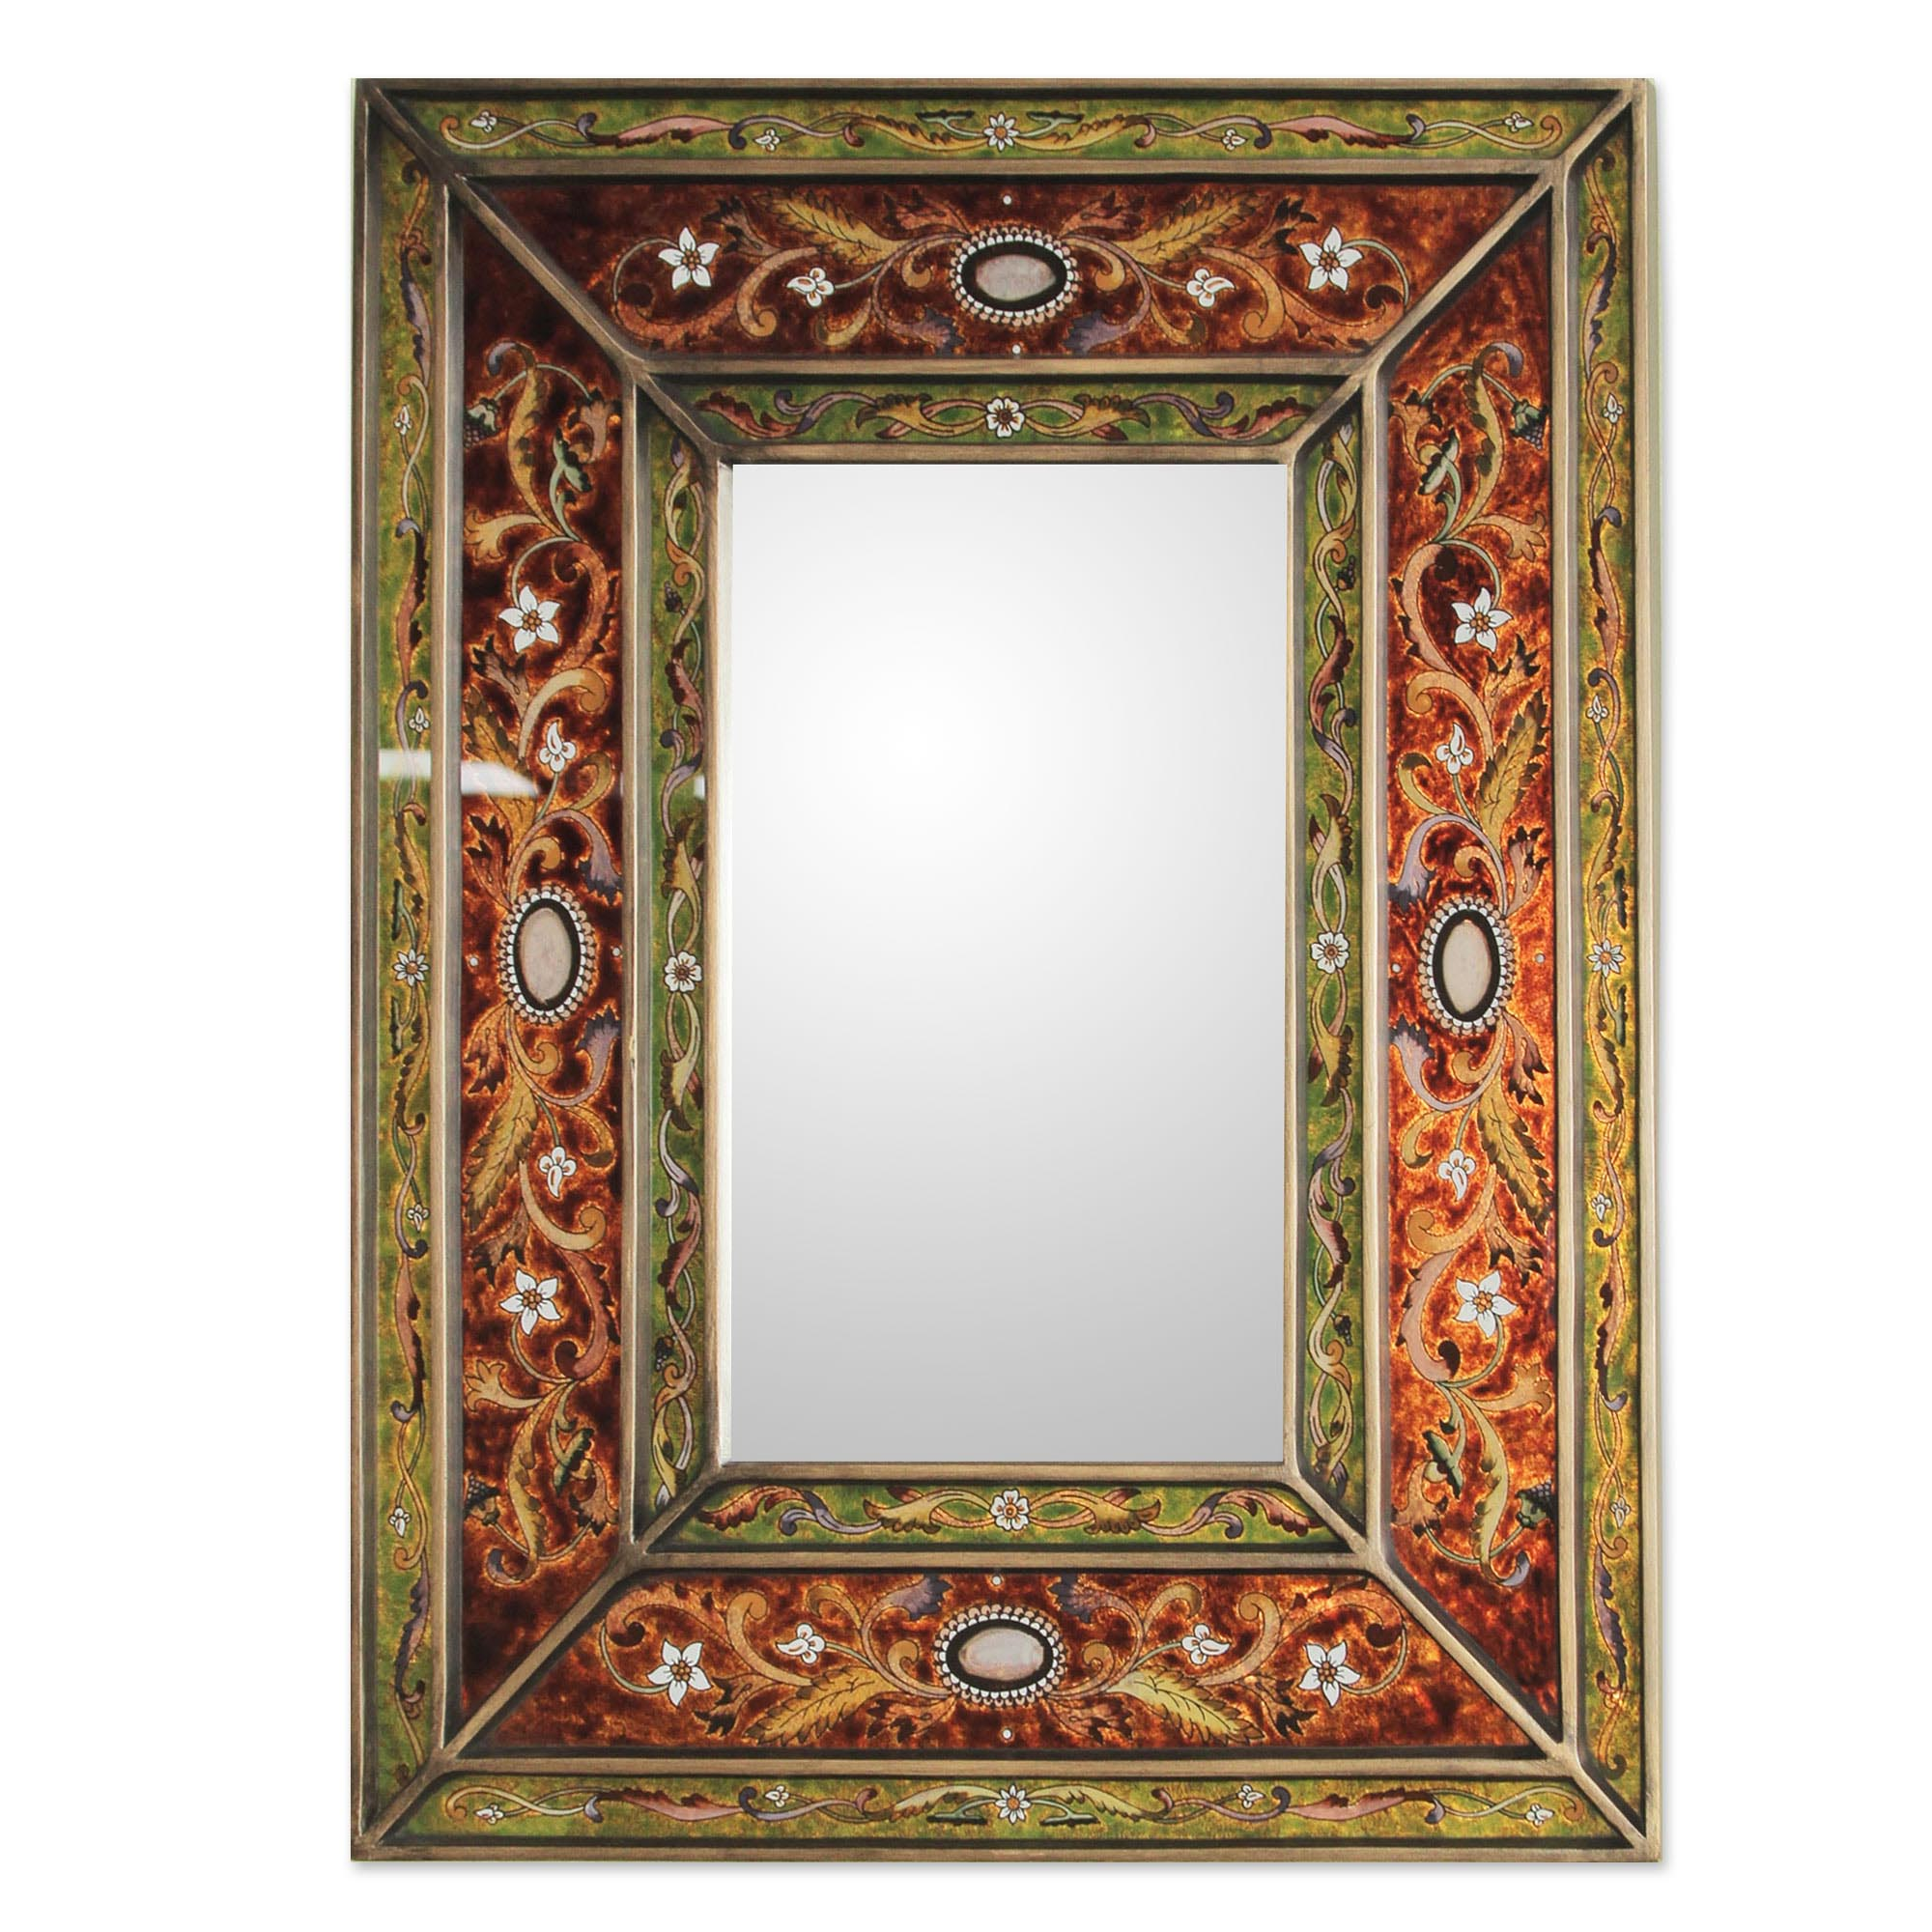 Unique Wall Mirrors Decor Antique Wall Mirrors Guide Best Decor Things